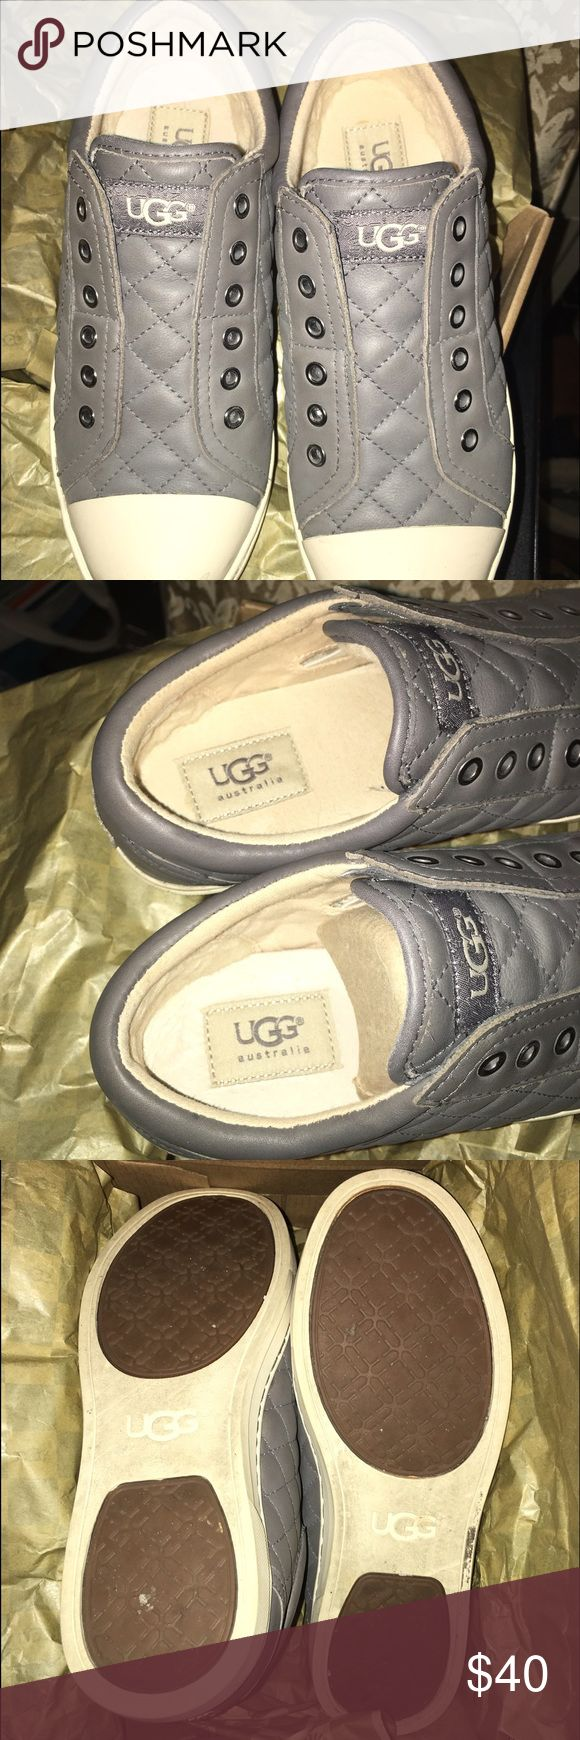 Ugg sneakers comfortable rarely worn Ugg sneakers very comfortable rarely worn looking for a nice set a feet to be shown off UGG Shoes Sneakers